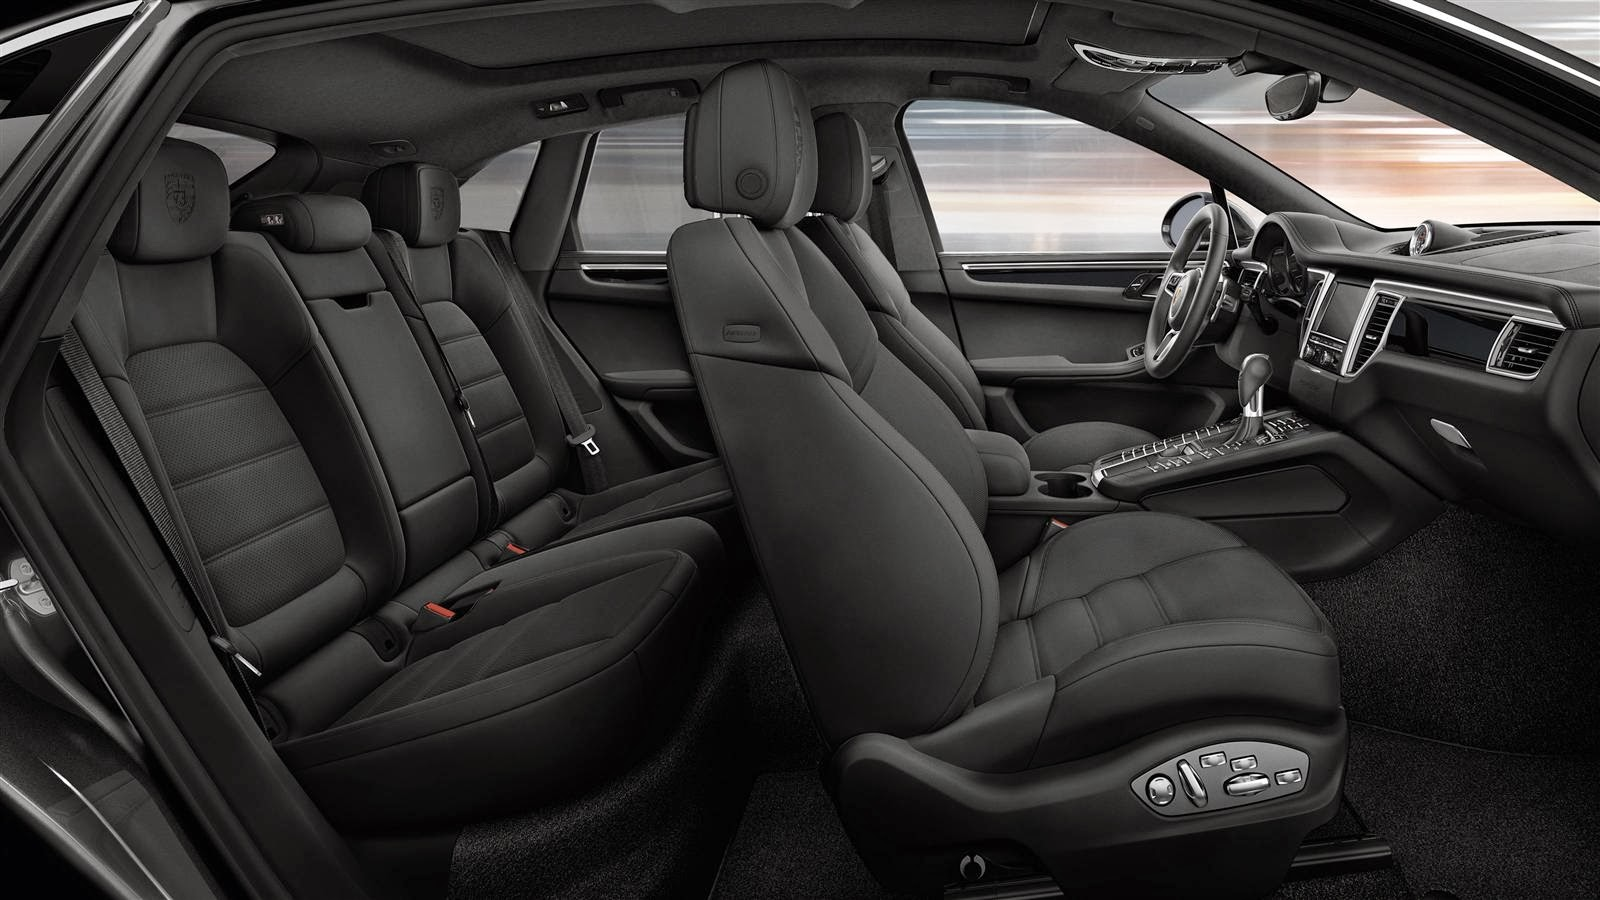 911 Turbo Pictures Amp Videos Porsche Macan Revealed